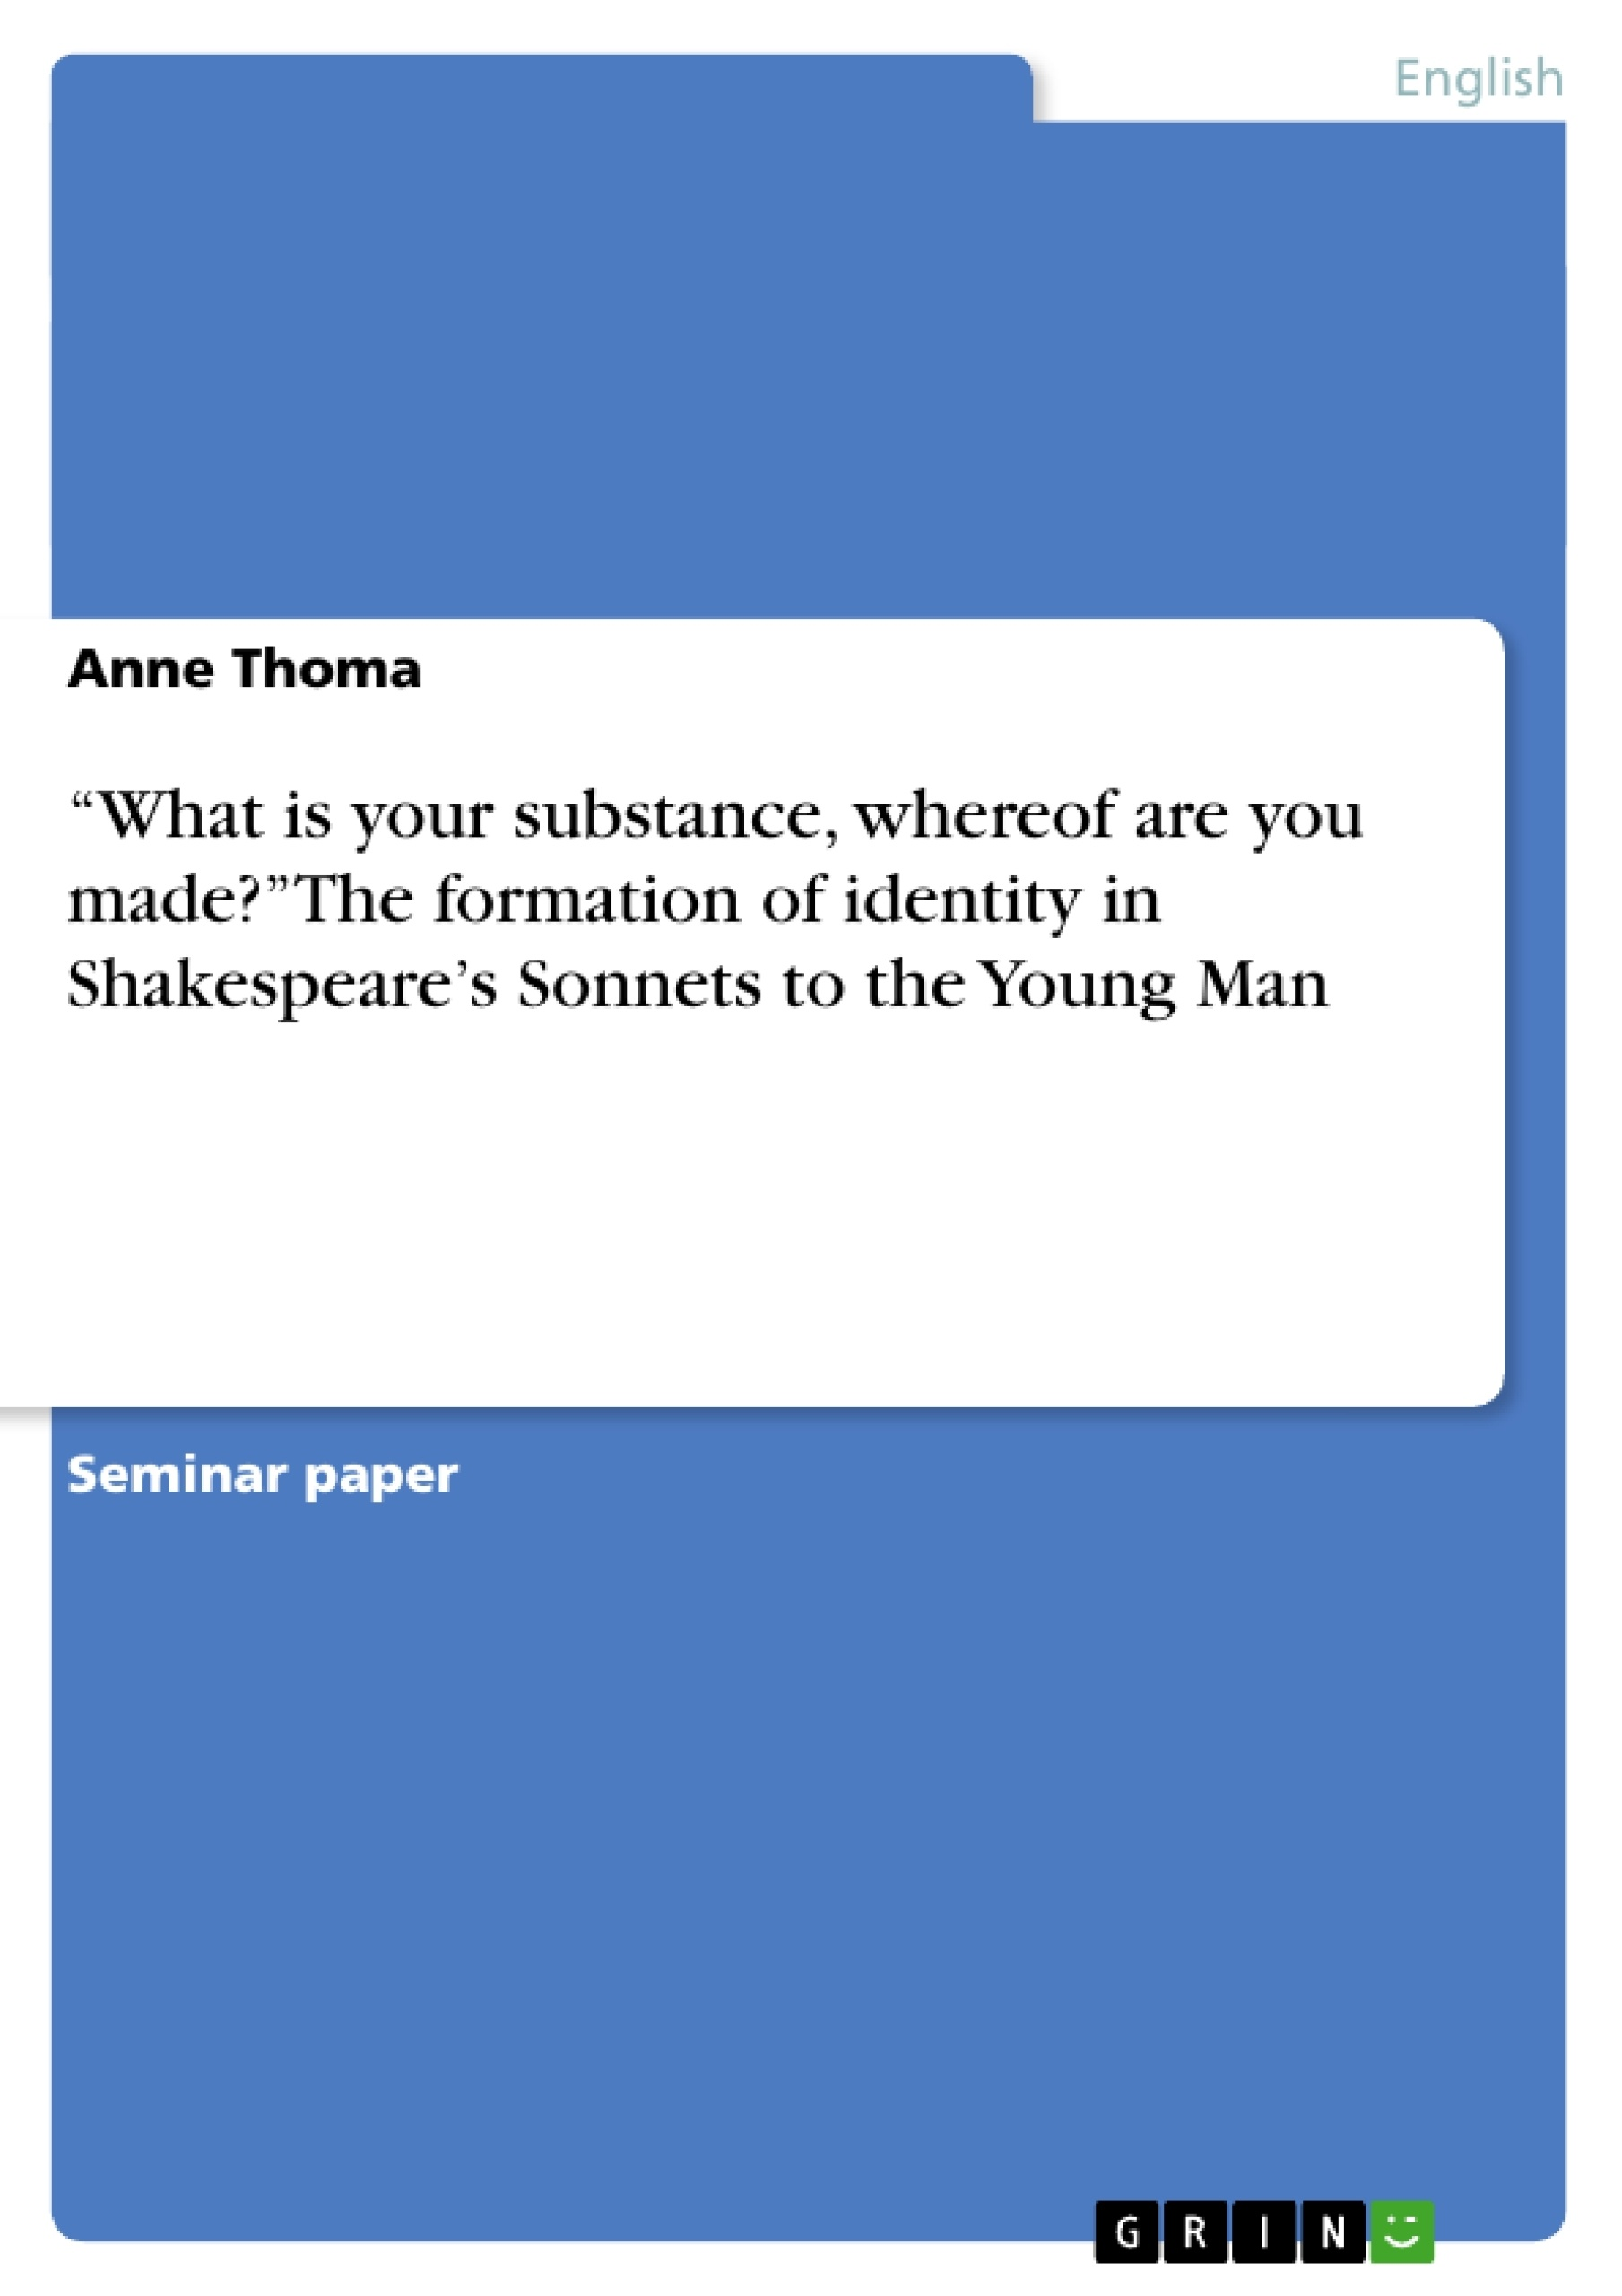 """Title: """"What is your substance, whereof are you made?"""" The formation of identity in Shakespeare's Sonnets to the Young Man"""